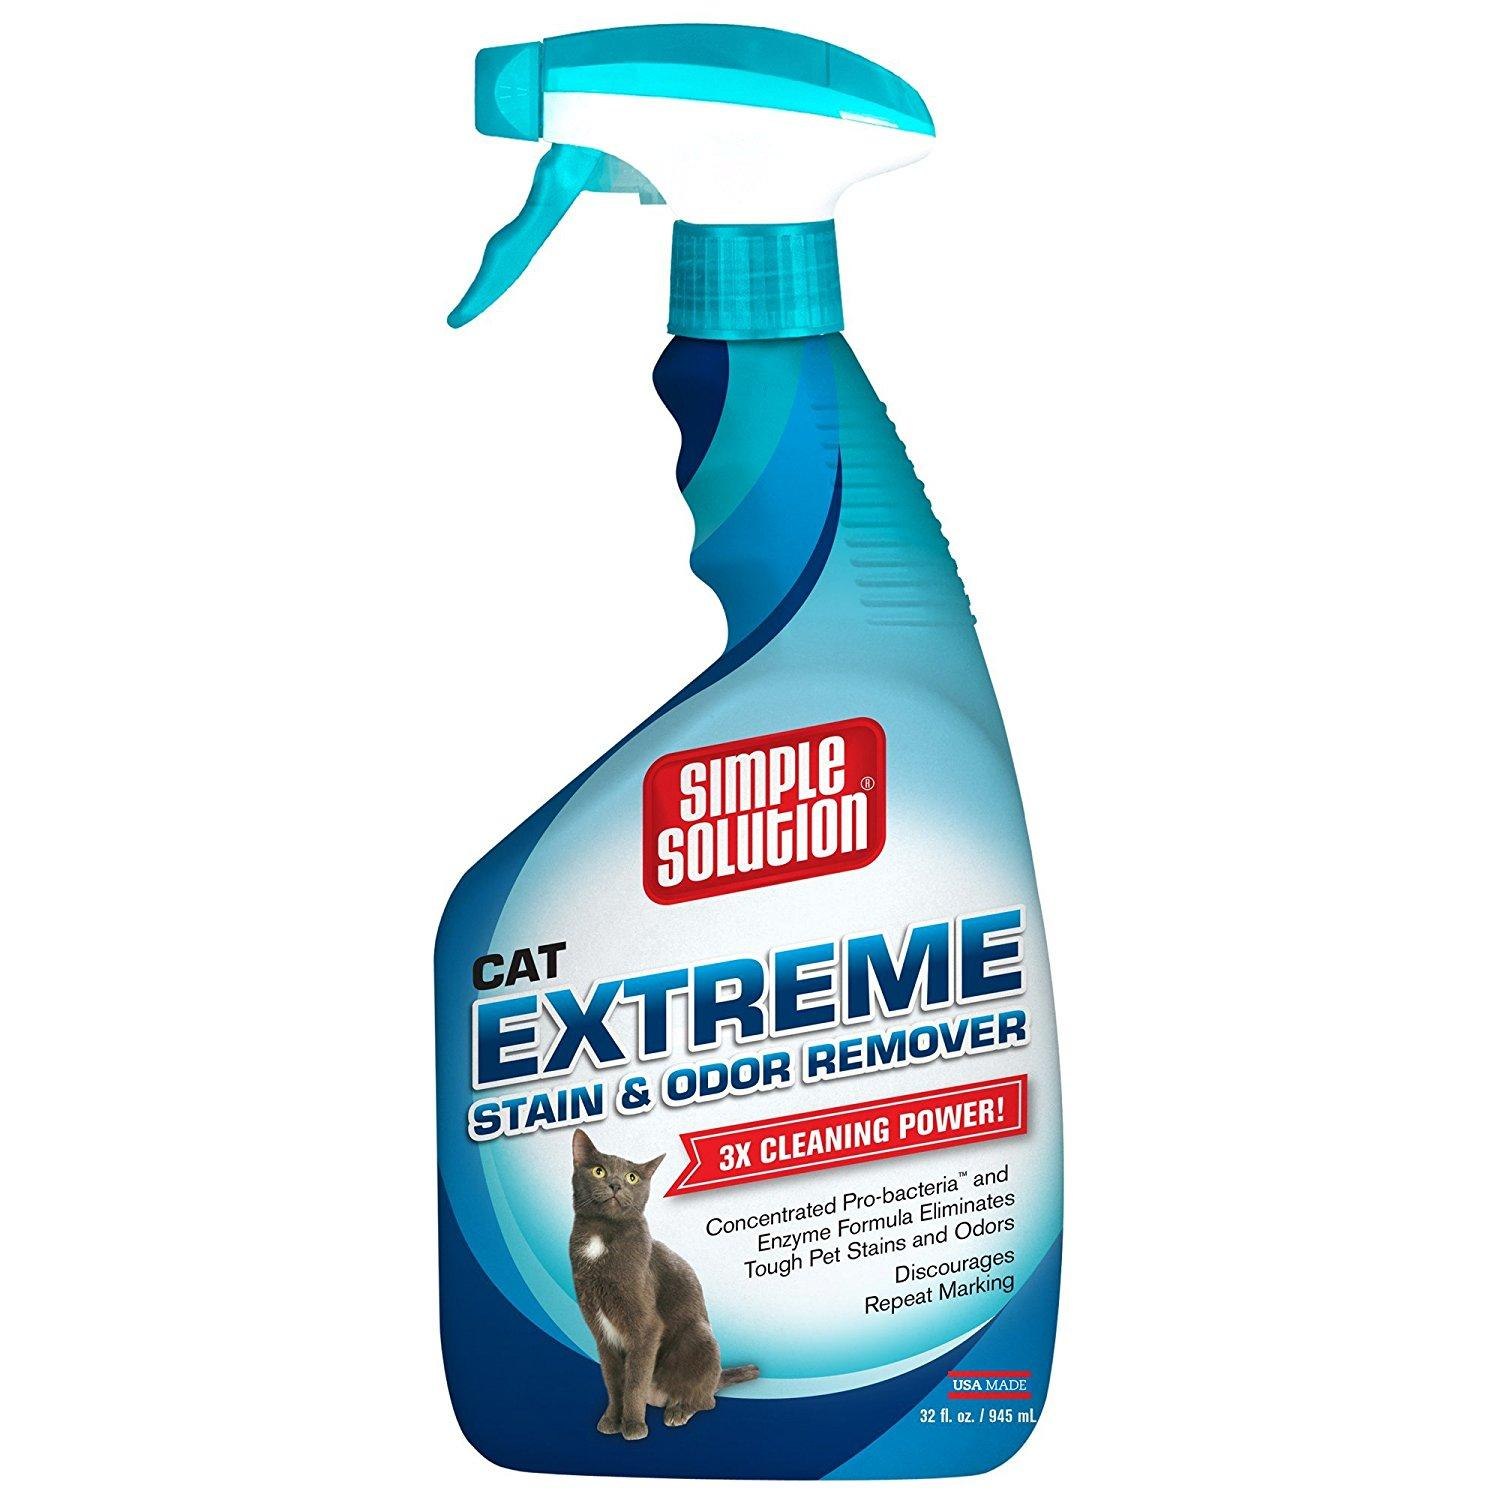 5 Best Cat Spray And Odor Removal Products Must Read